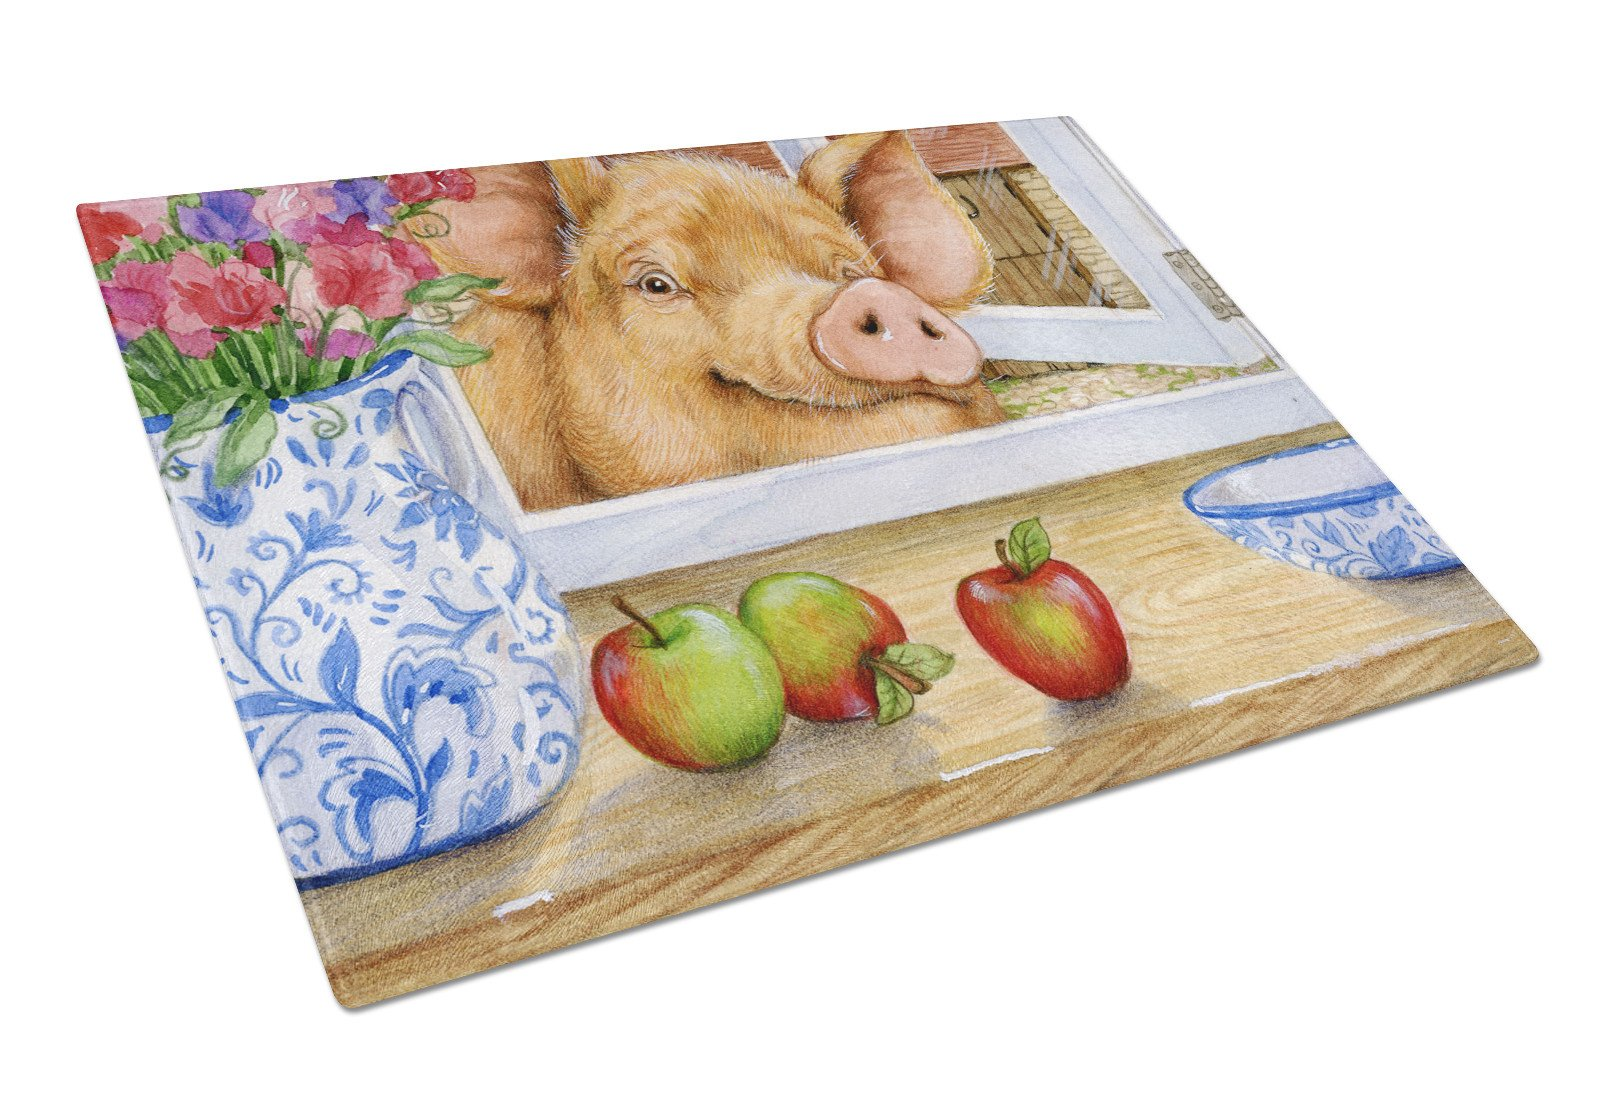 Pig trying to reach the Apple in the Window Glass Cutting Board Large CDCO0352LCB by Caroline's Treasures